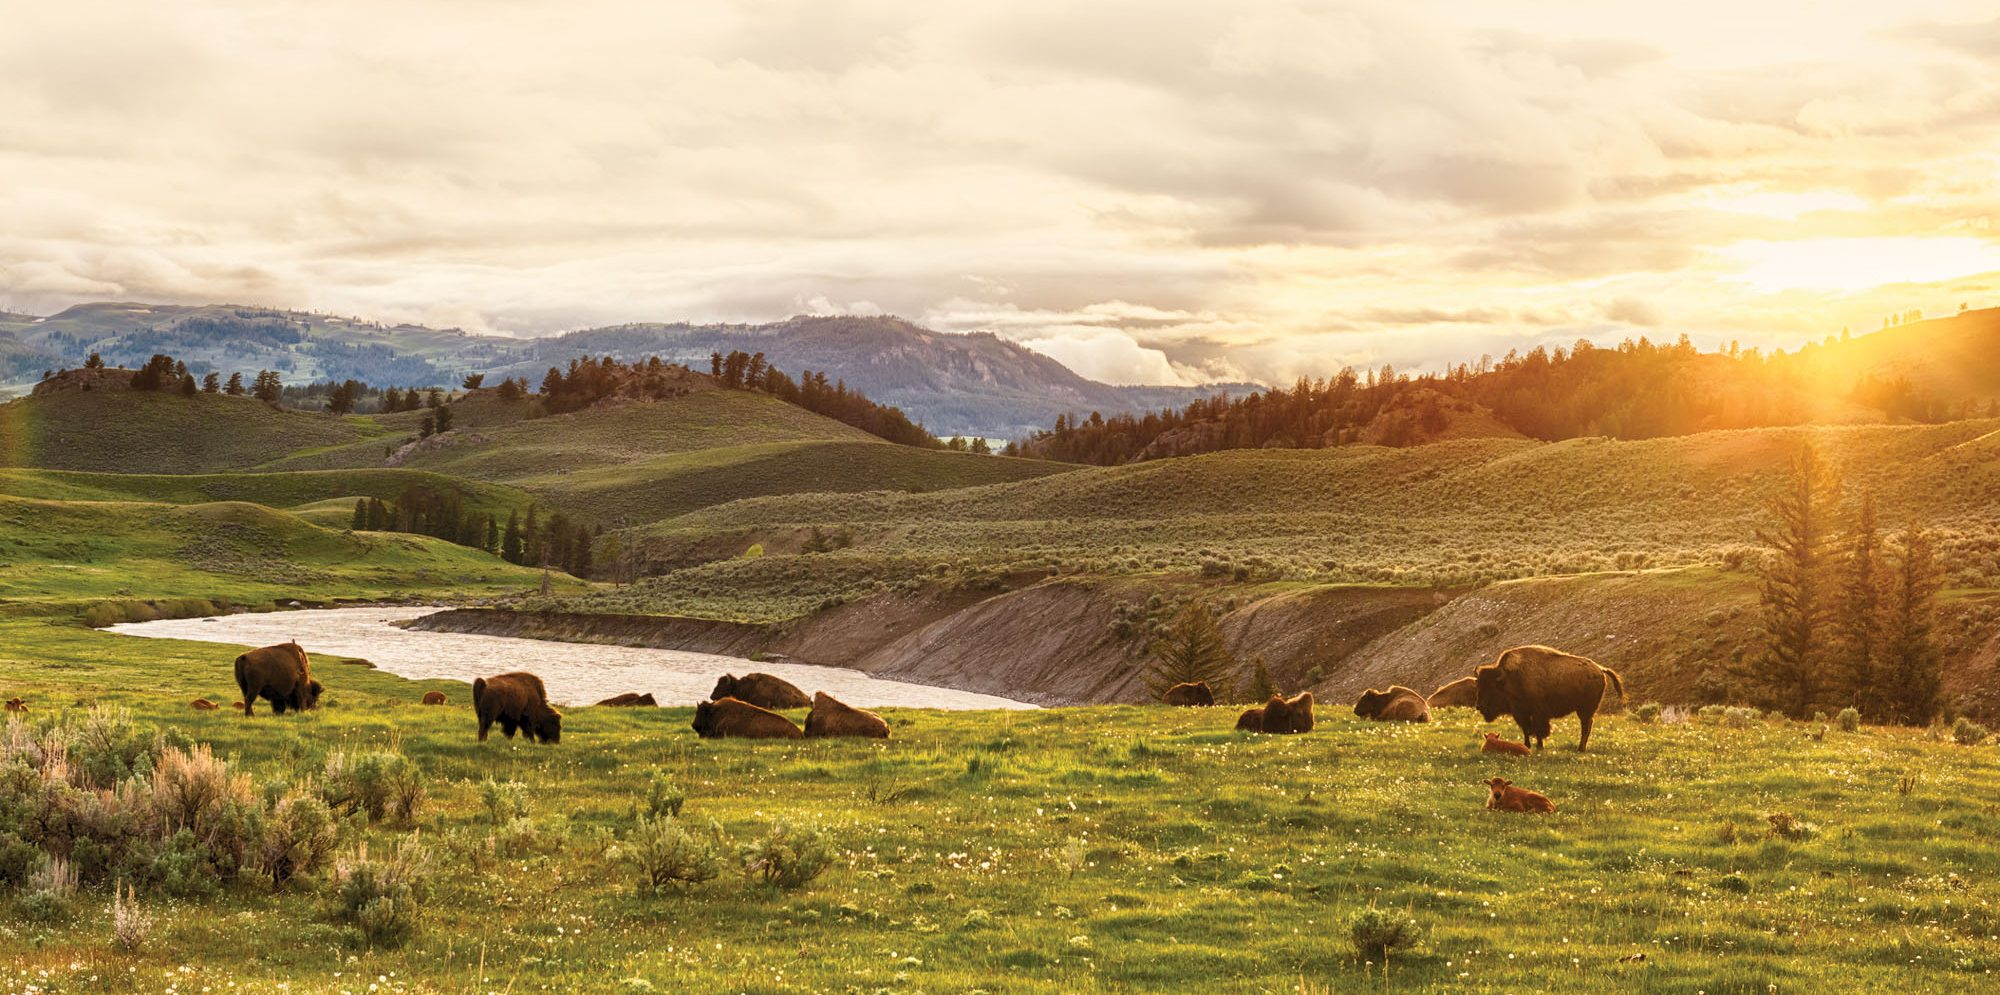 Insider's Guide to Yellowstone